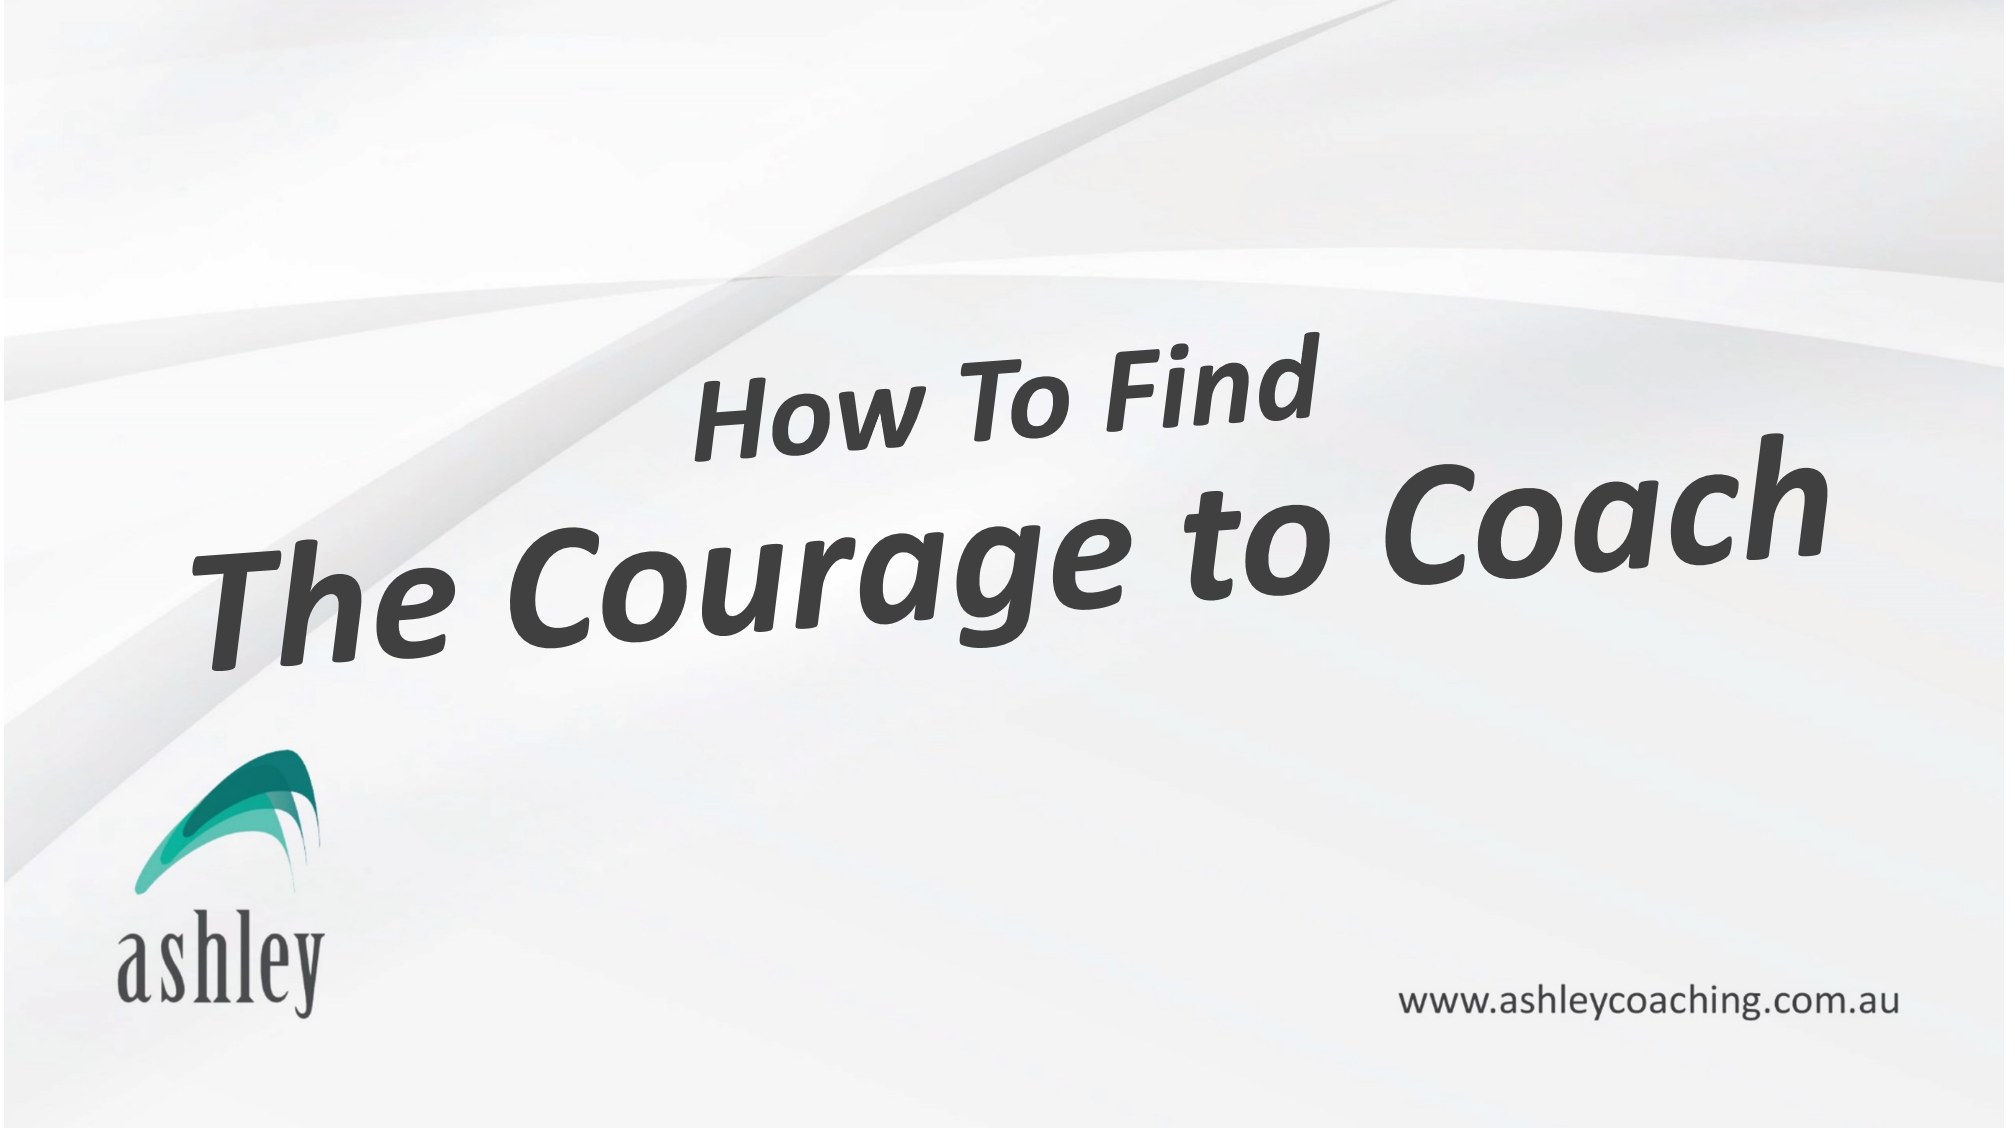 How To Find The Courage To Coach